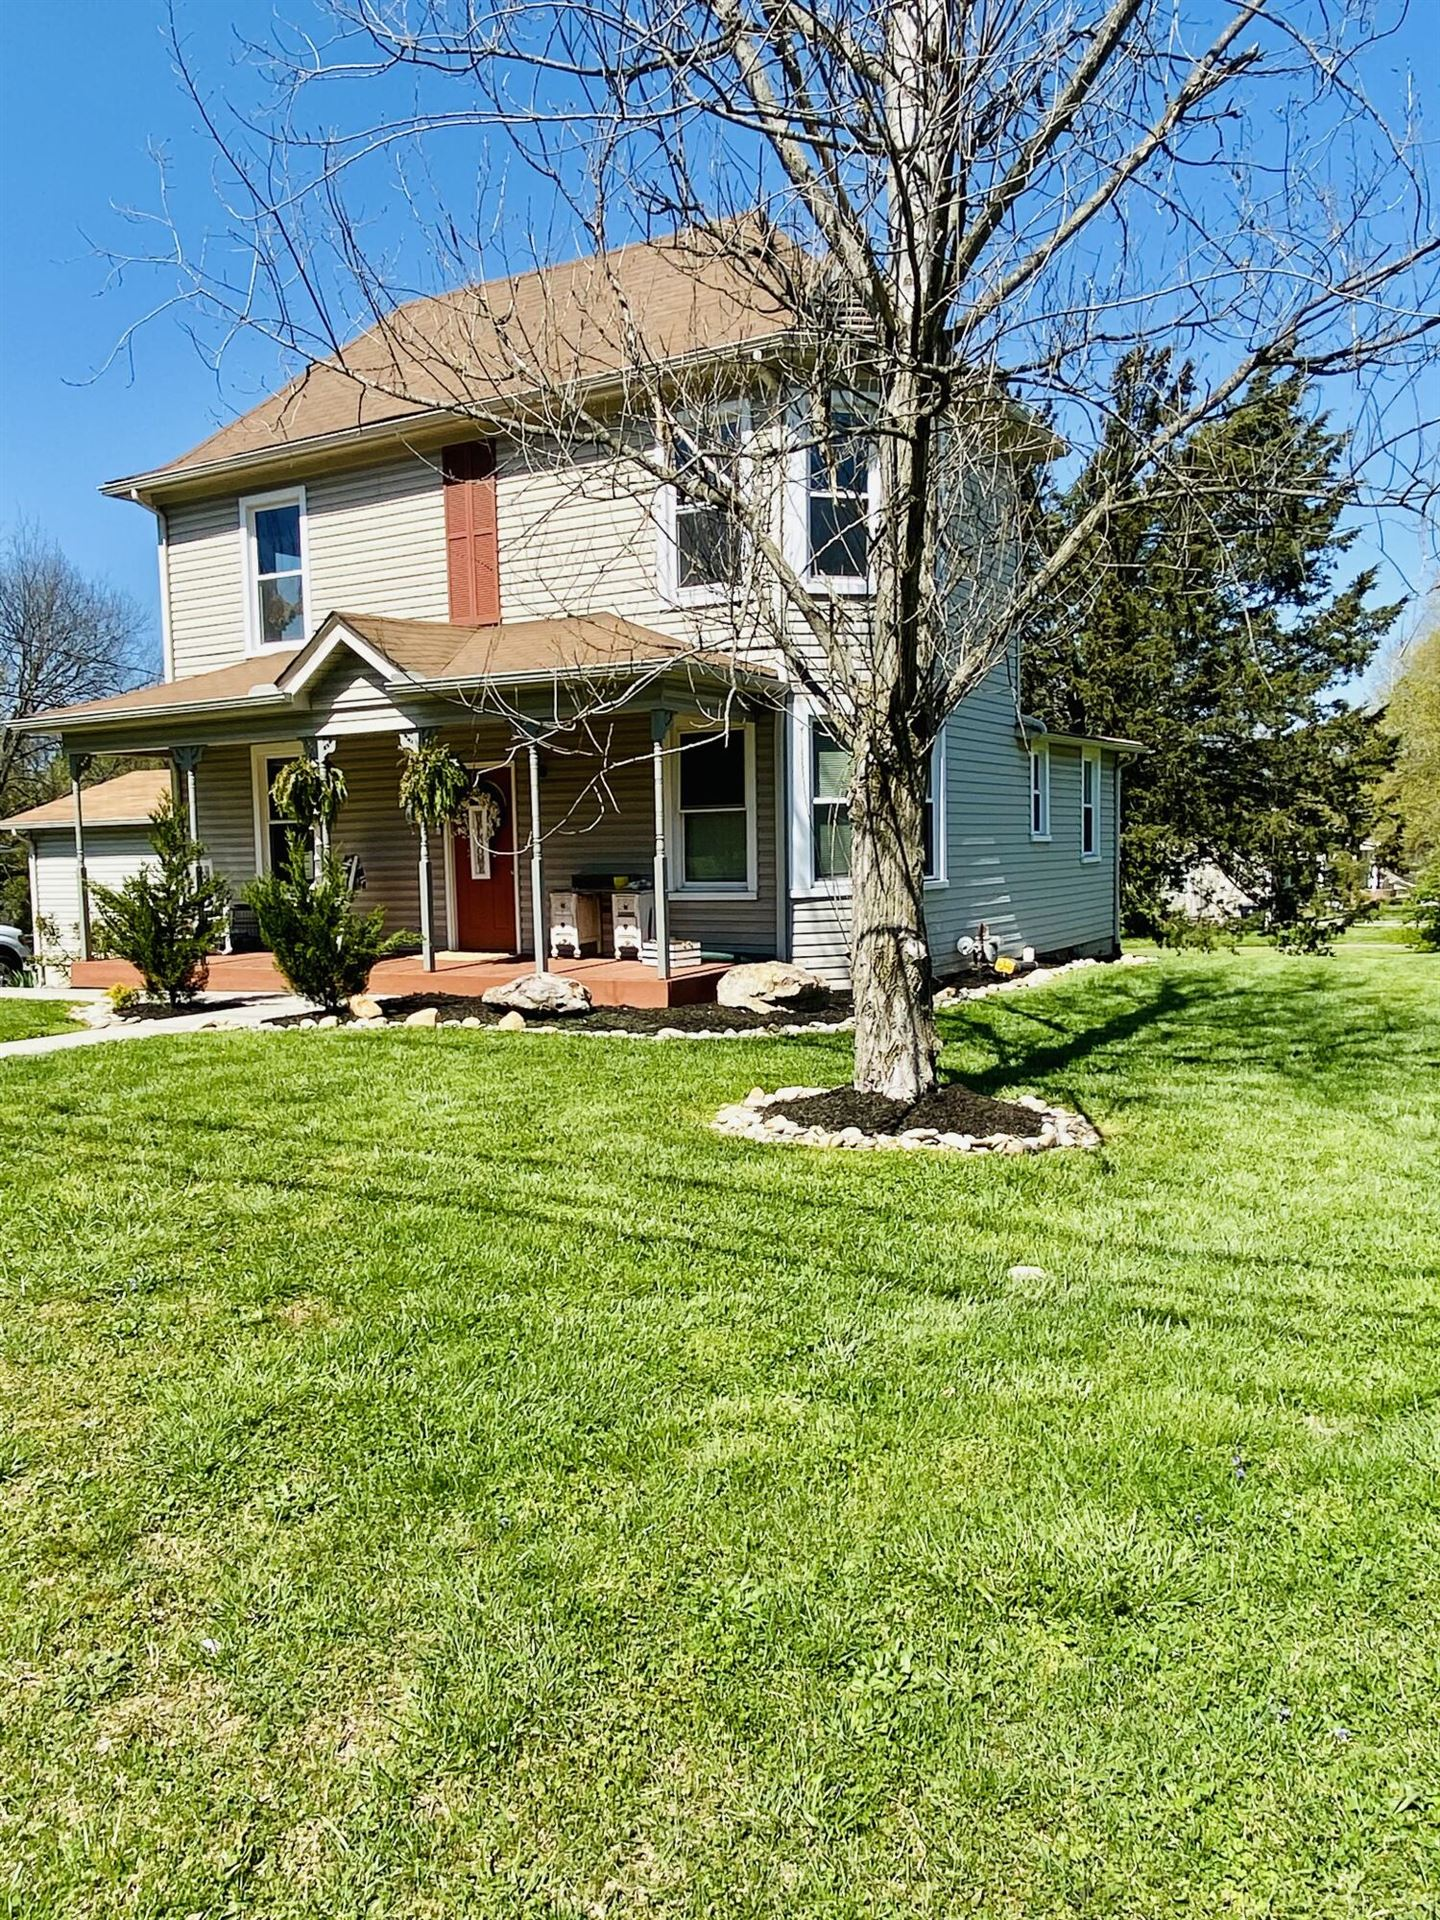 Photo of 2625 Forestdale Ave, Knoxville, TN 37917 (MLS # 1149027)